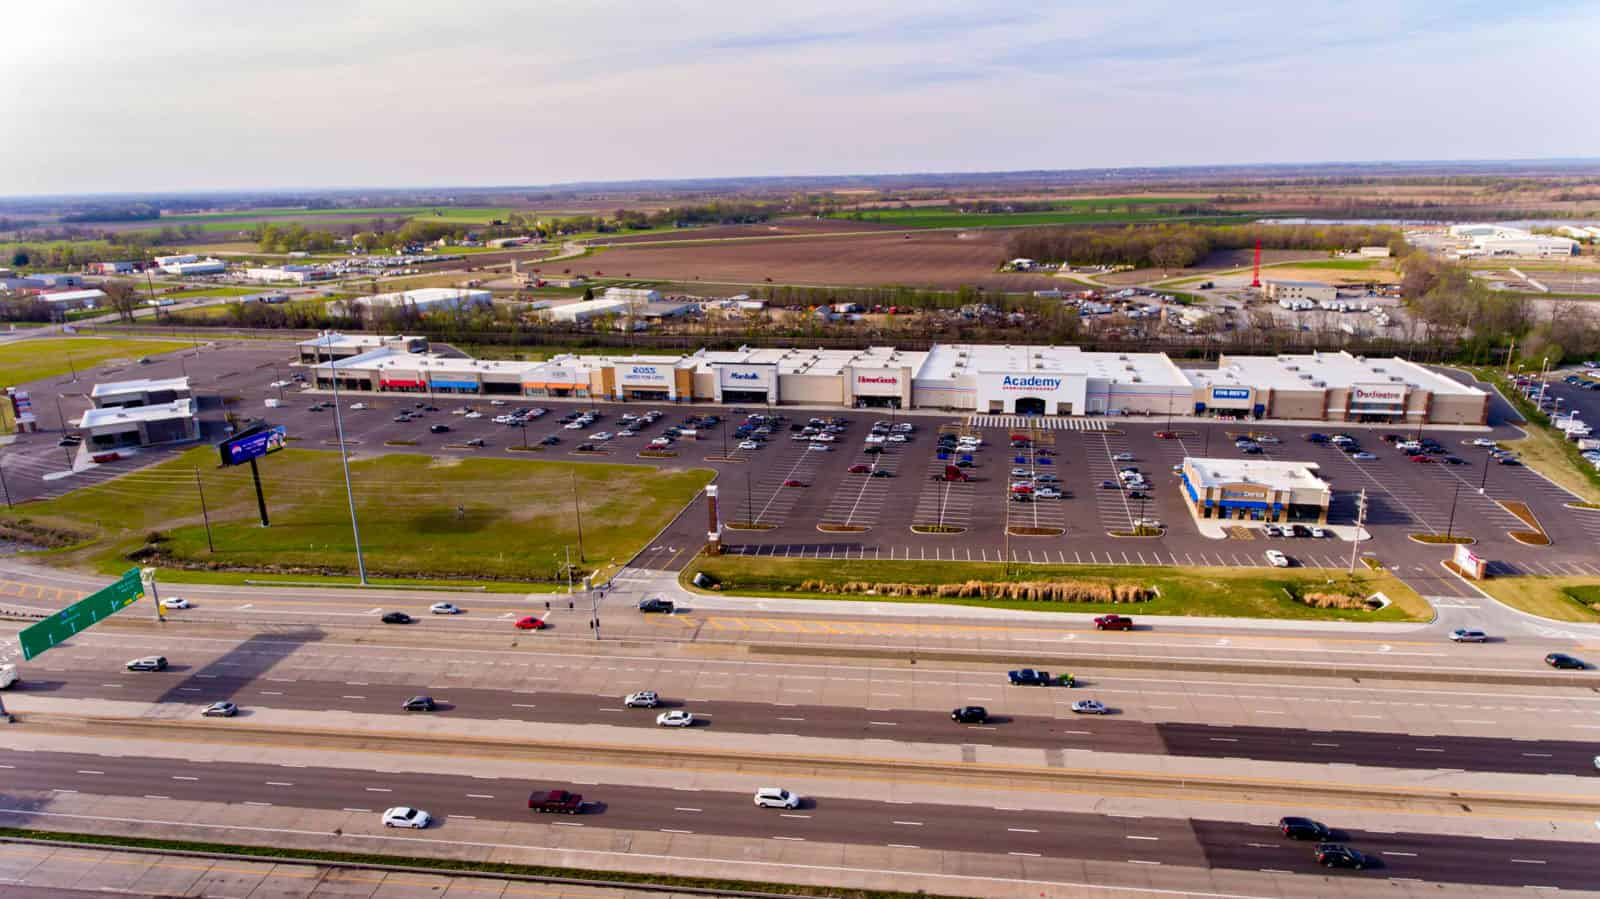 drone photo of shopping center in Missouri with Marshalls, Ross, and HomeGoods